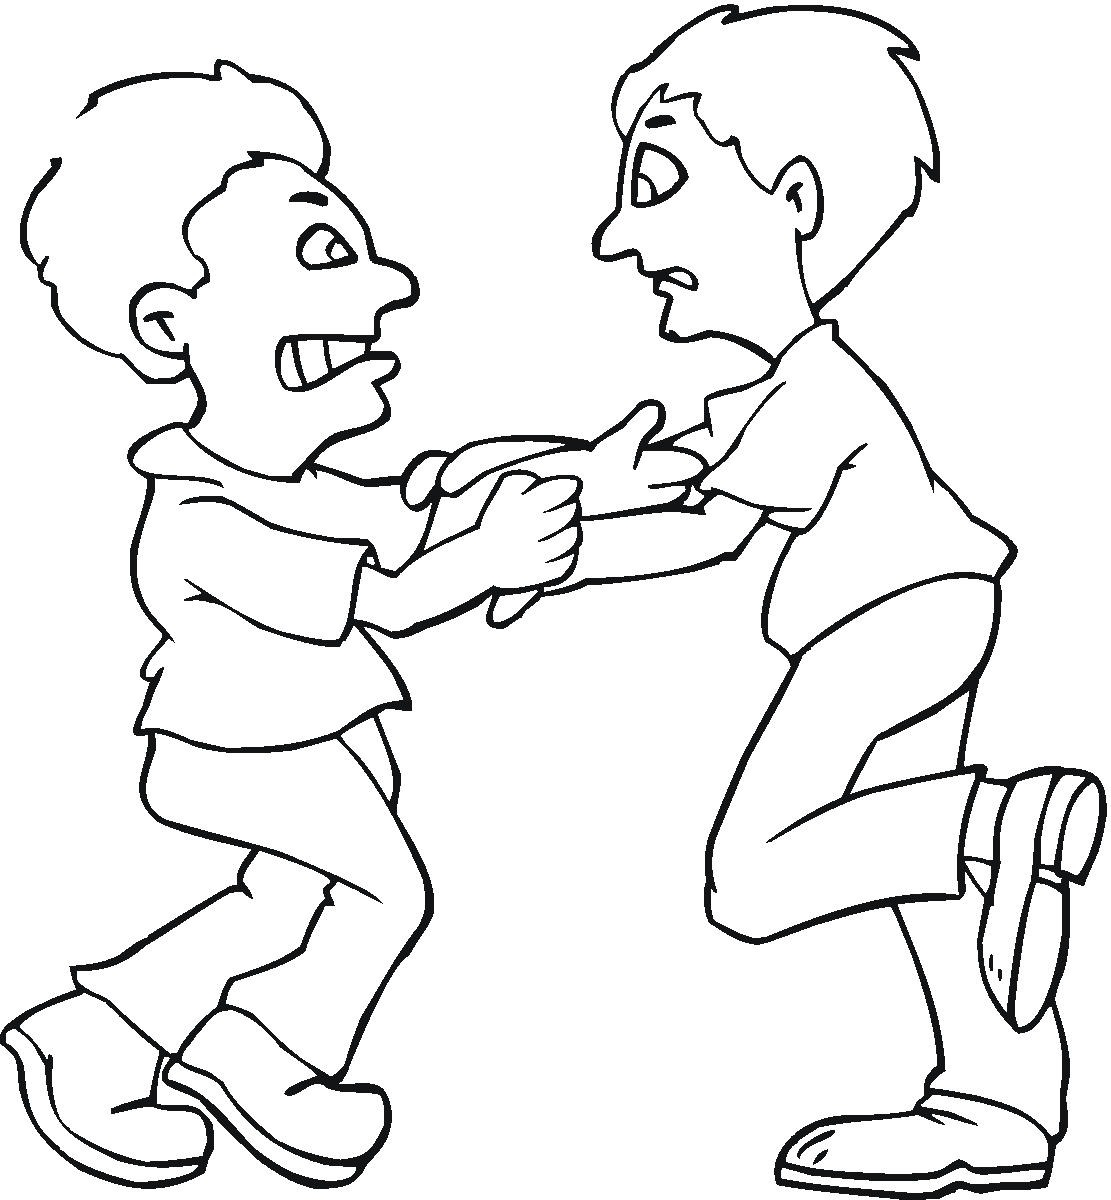 curse word coloring pages - q=love your enemies